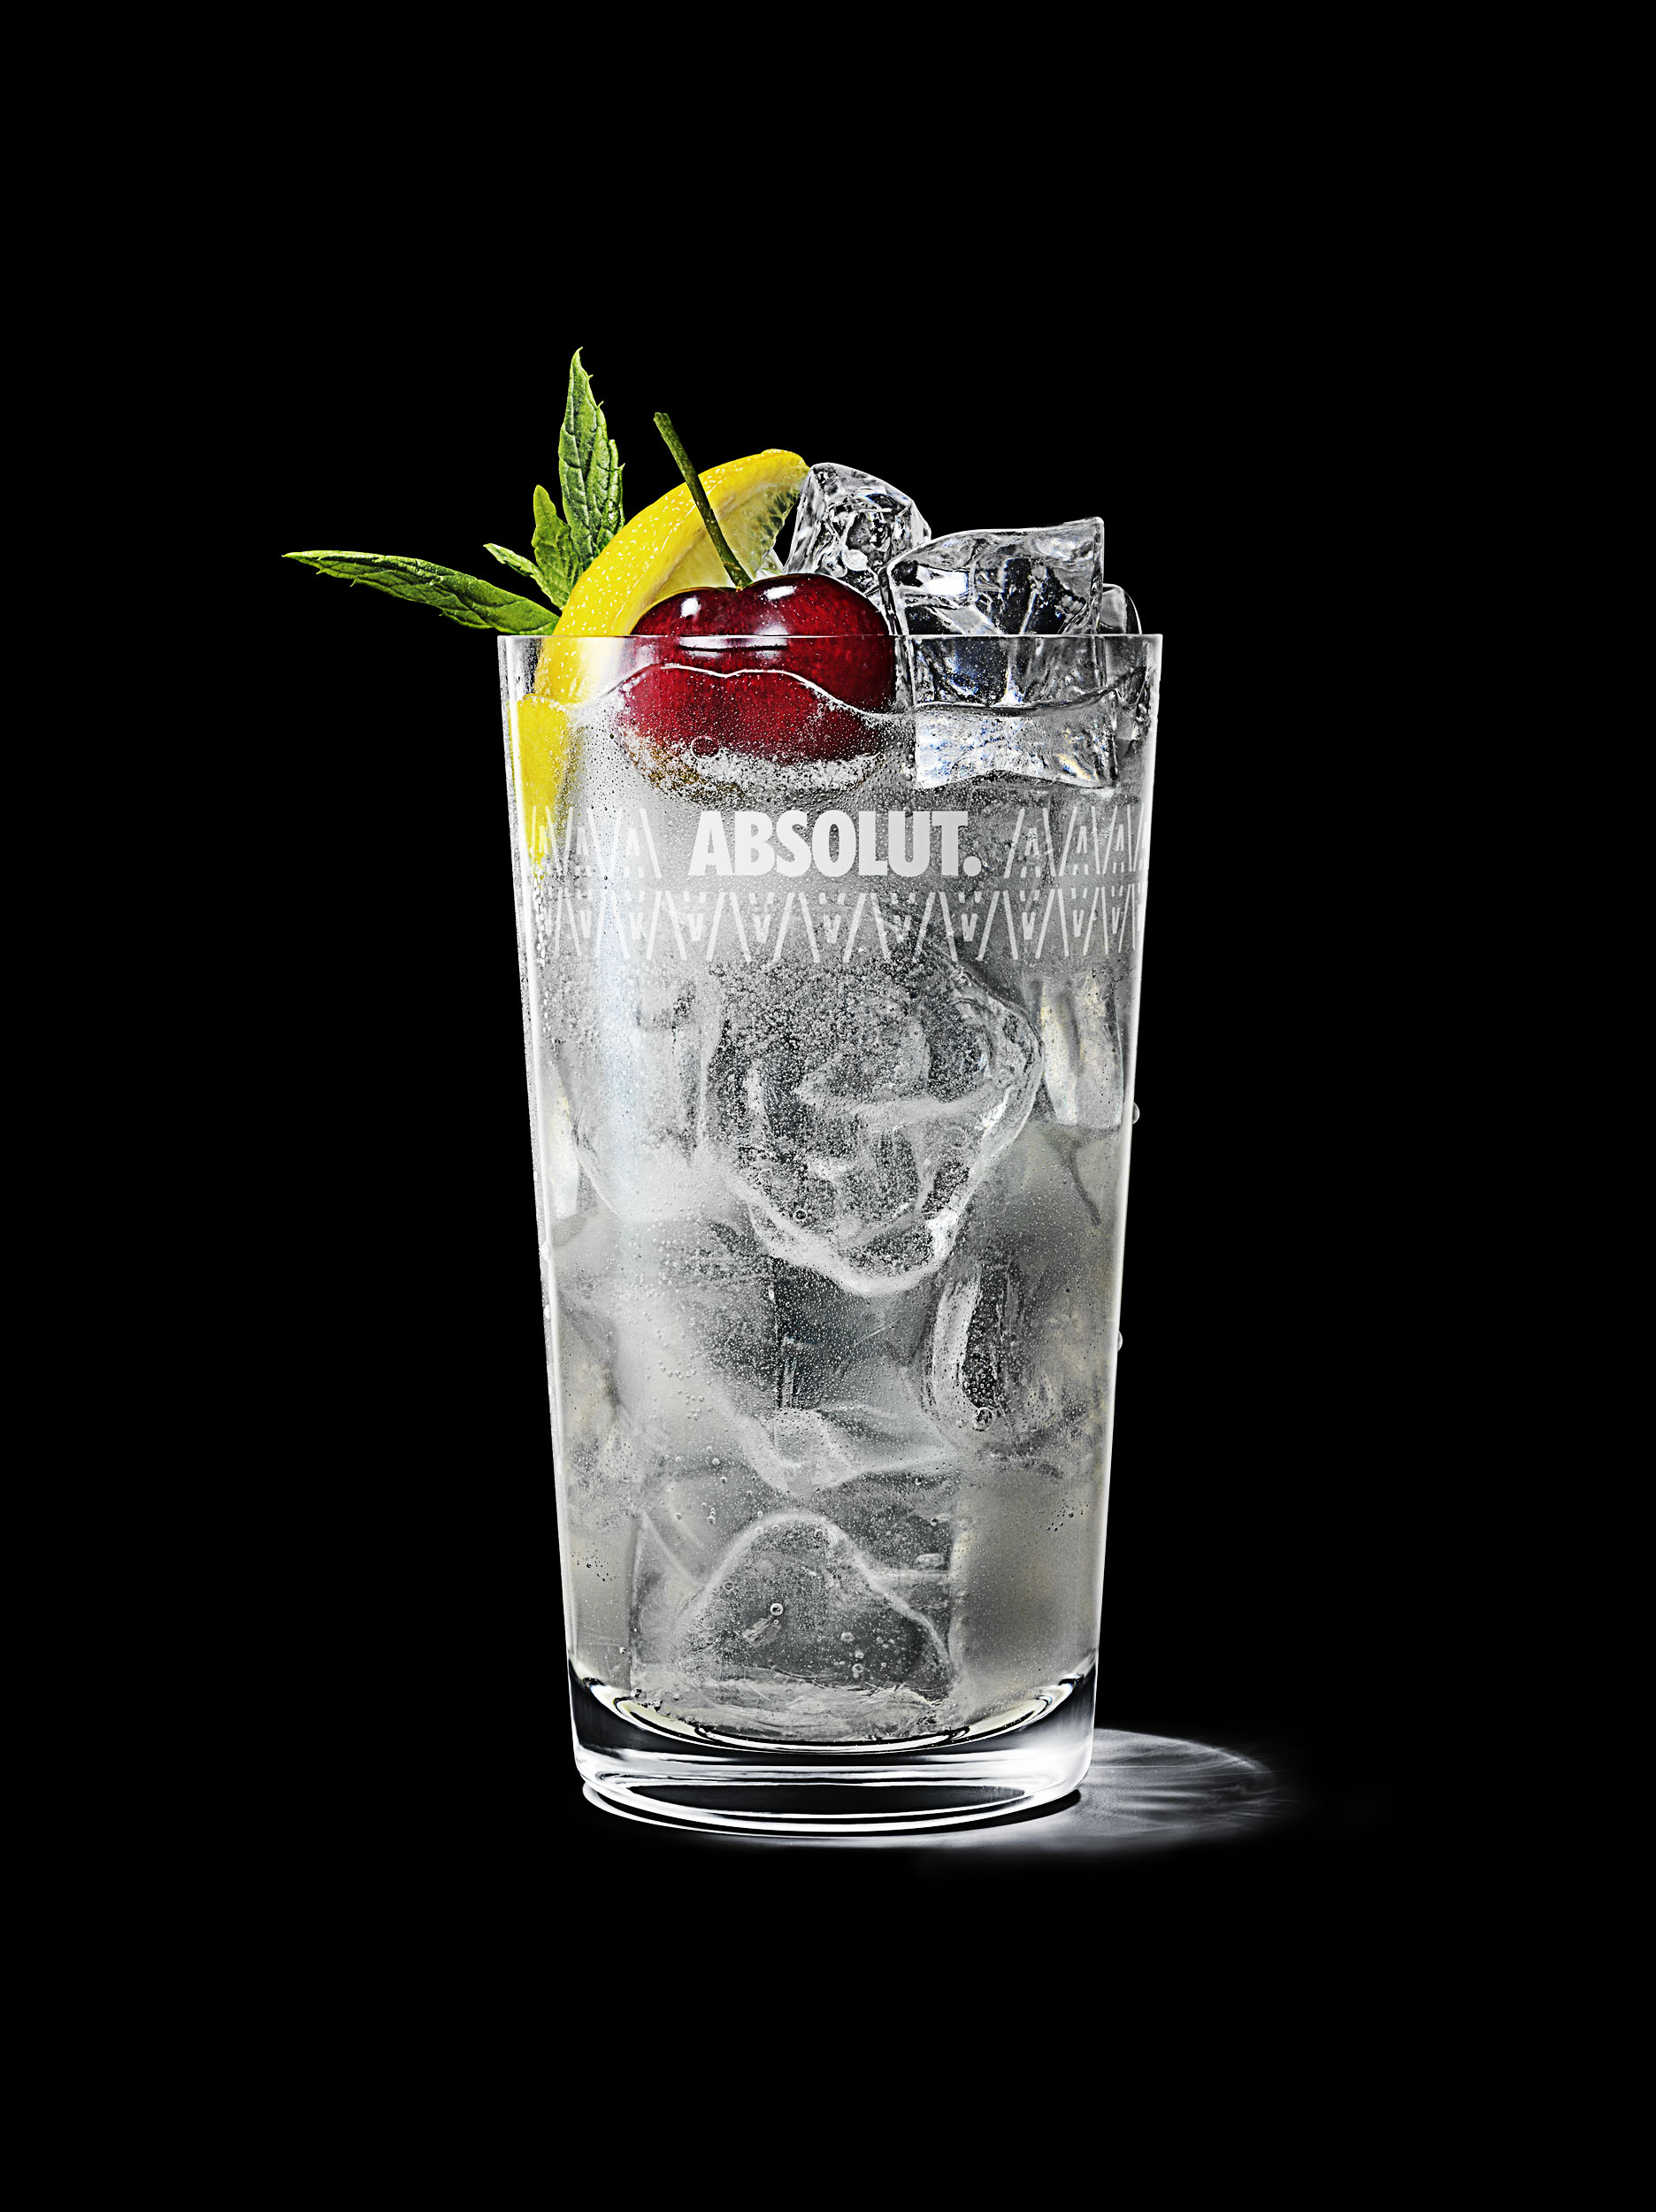 jensmortensen-absolut-vodka-6315f662